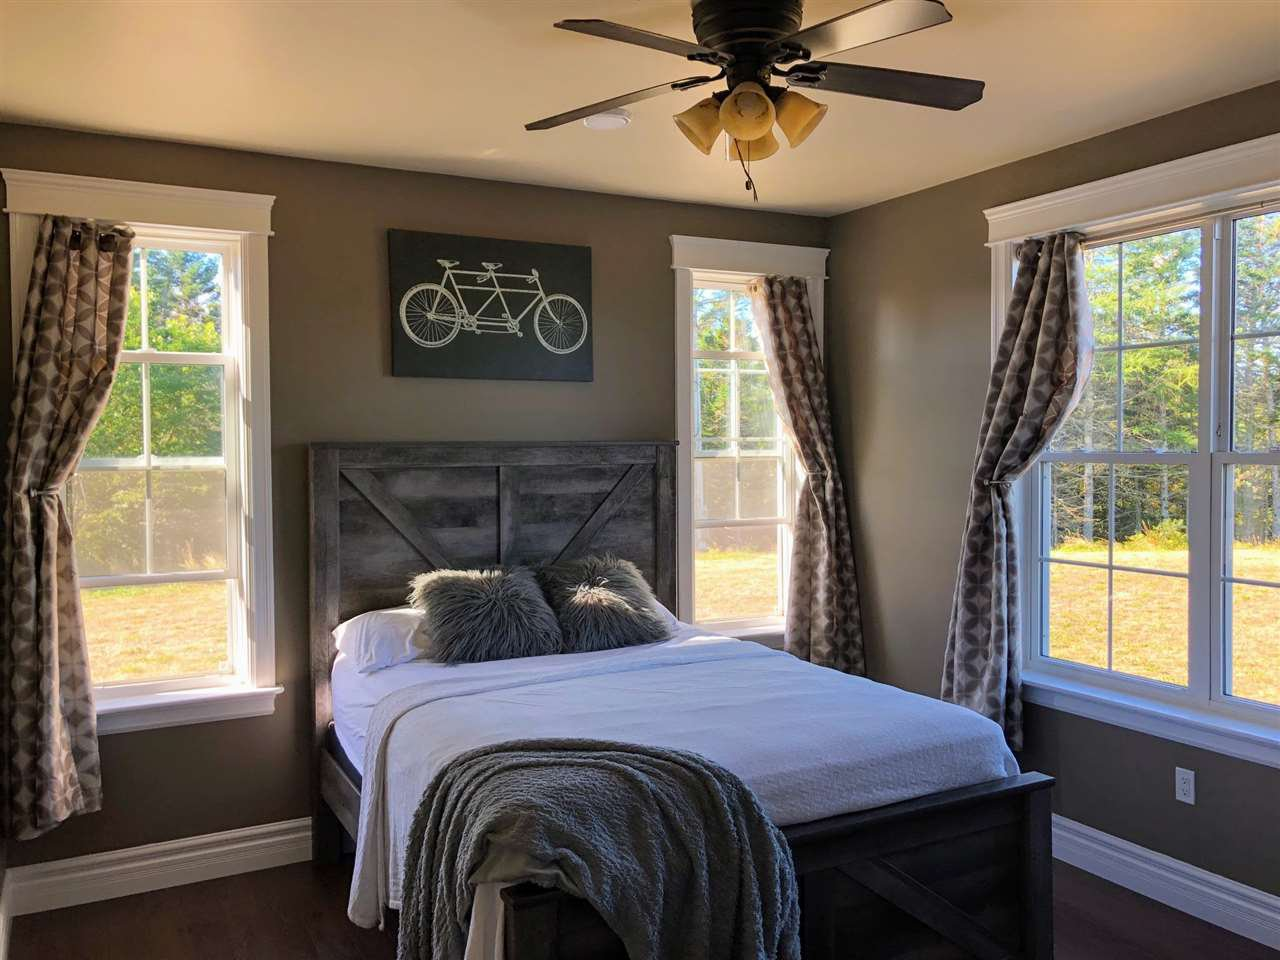 Photo 24: Photos: 1902 Stoney Island Road in Centreville: 407-Shelburne County Residential for sale (South Shore)  : MLS®# 201926888